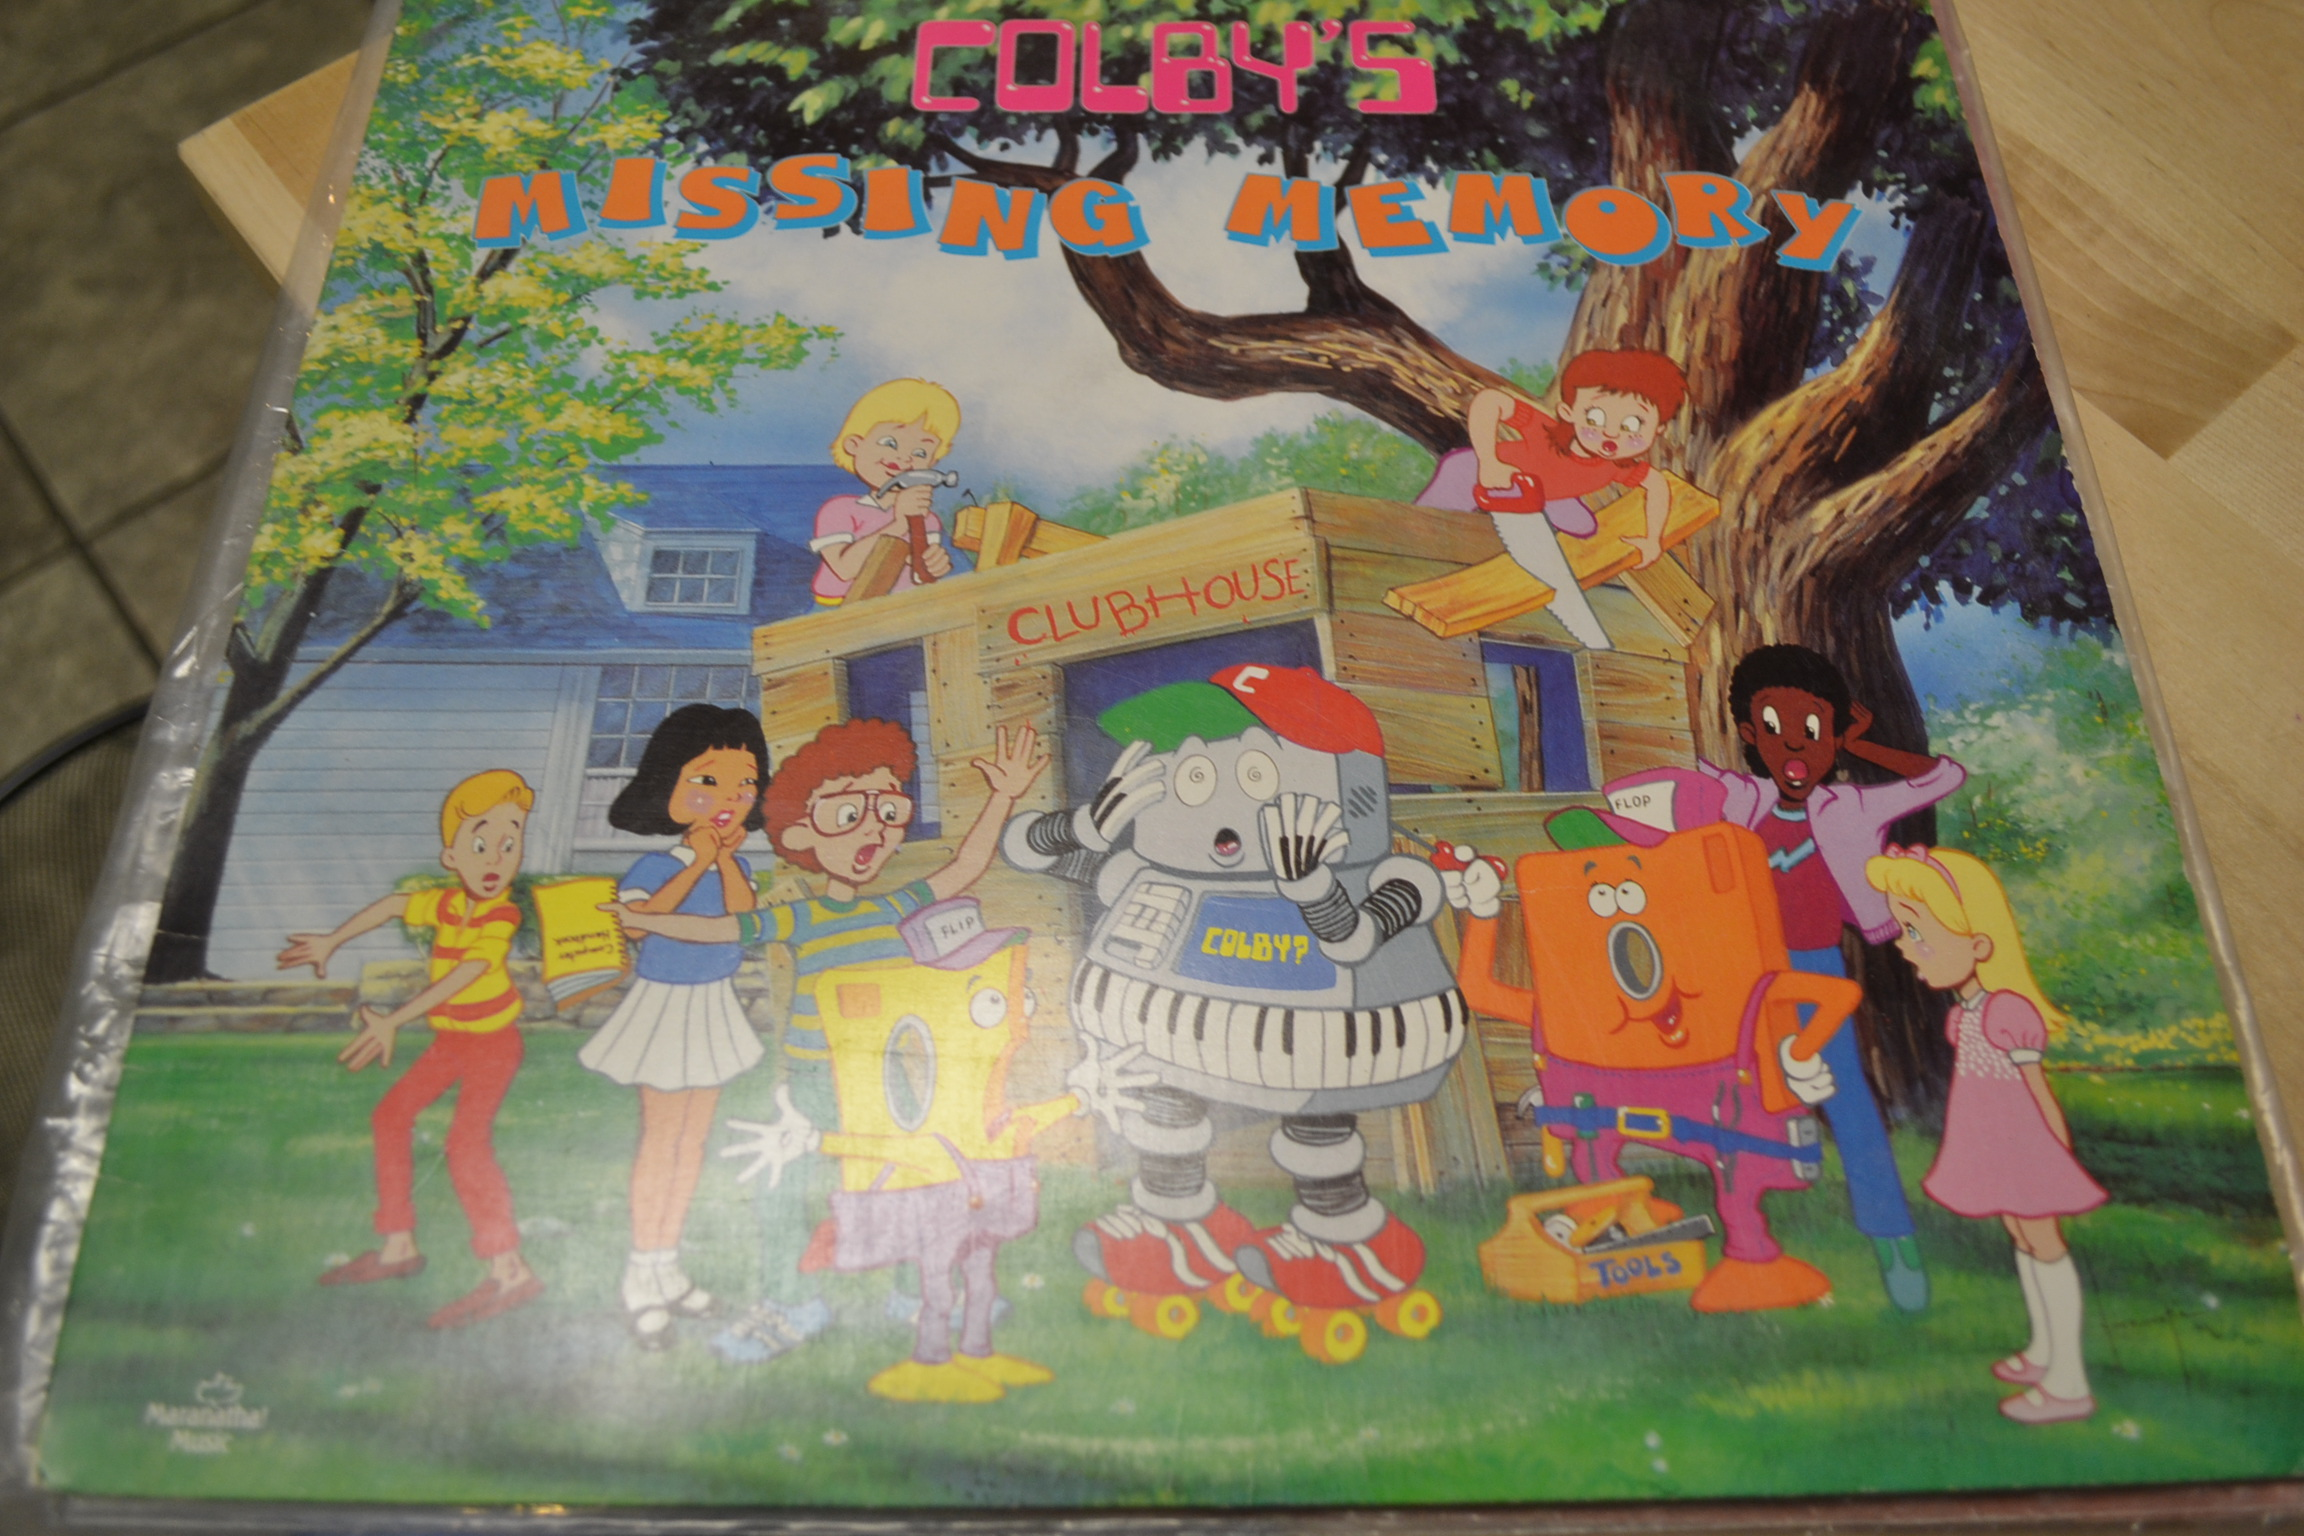 Colby's Missing Memory By Colby On Vinyl Record